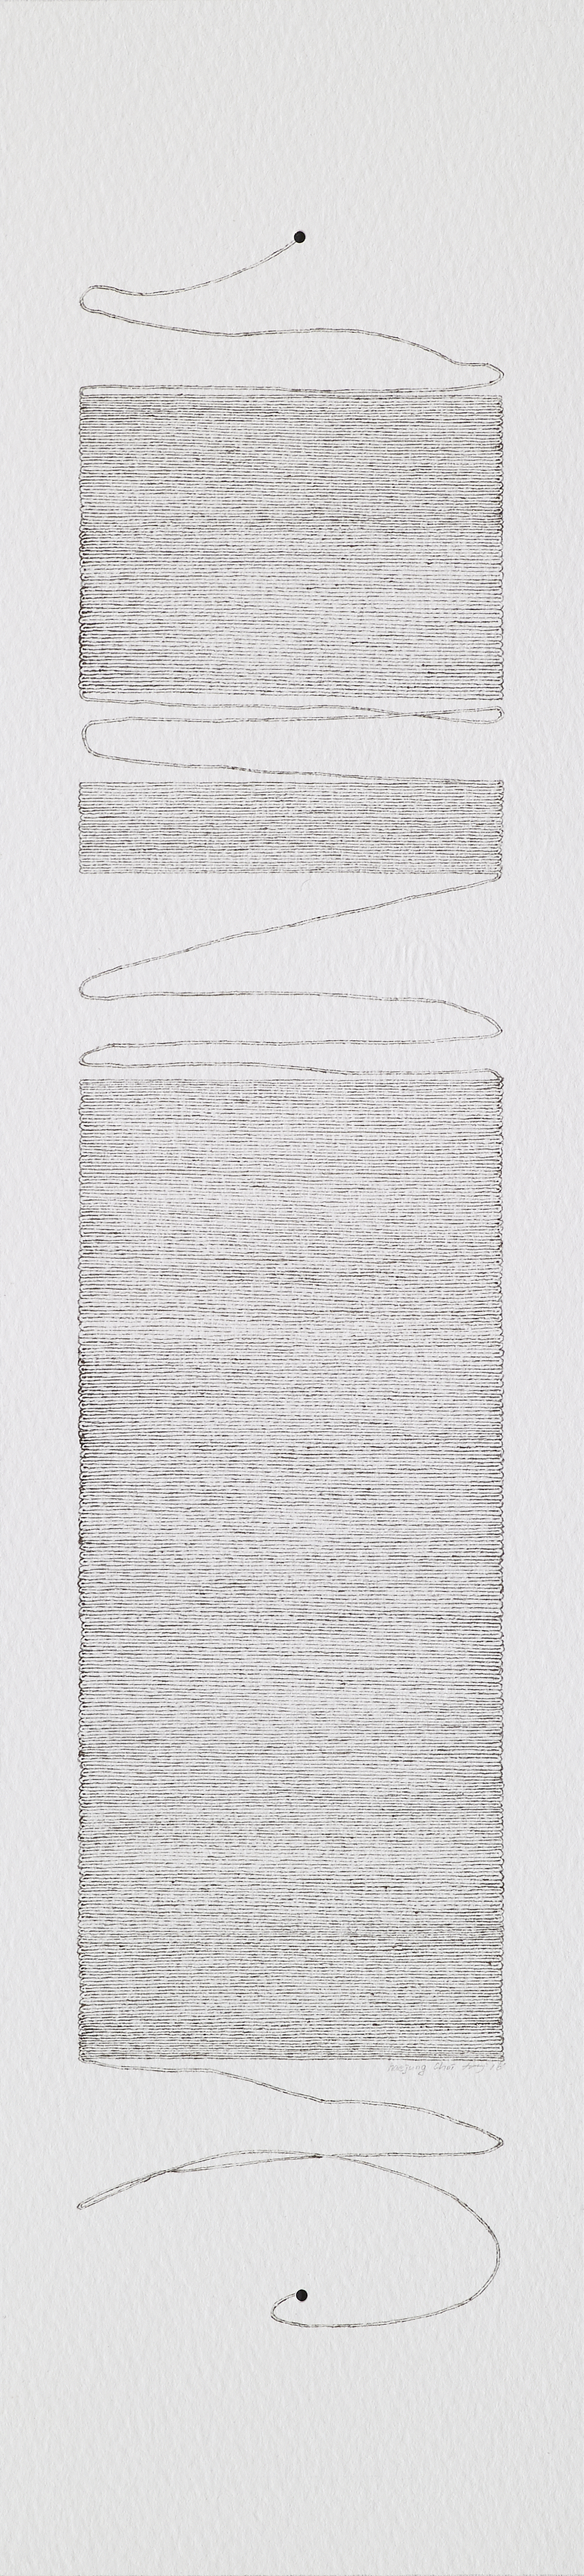 thought 160913__graphite powder, copper powder, pen on paper_11x48cm_2016